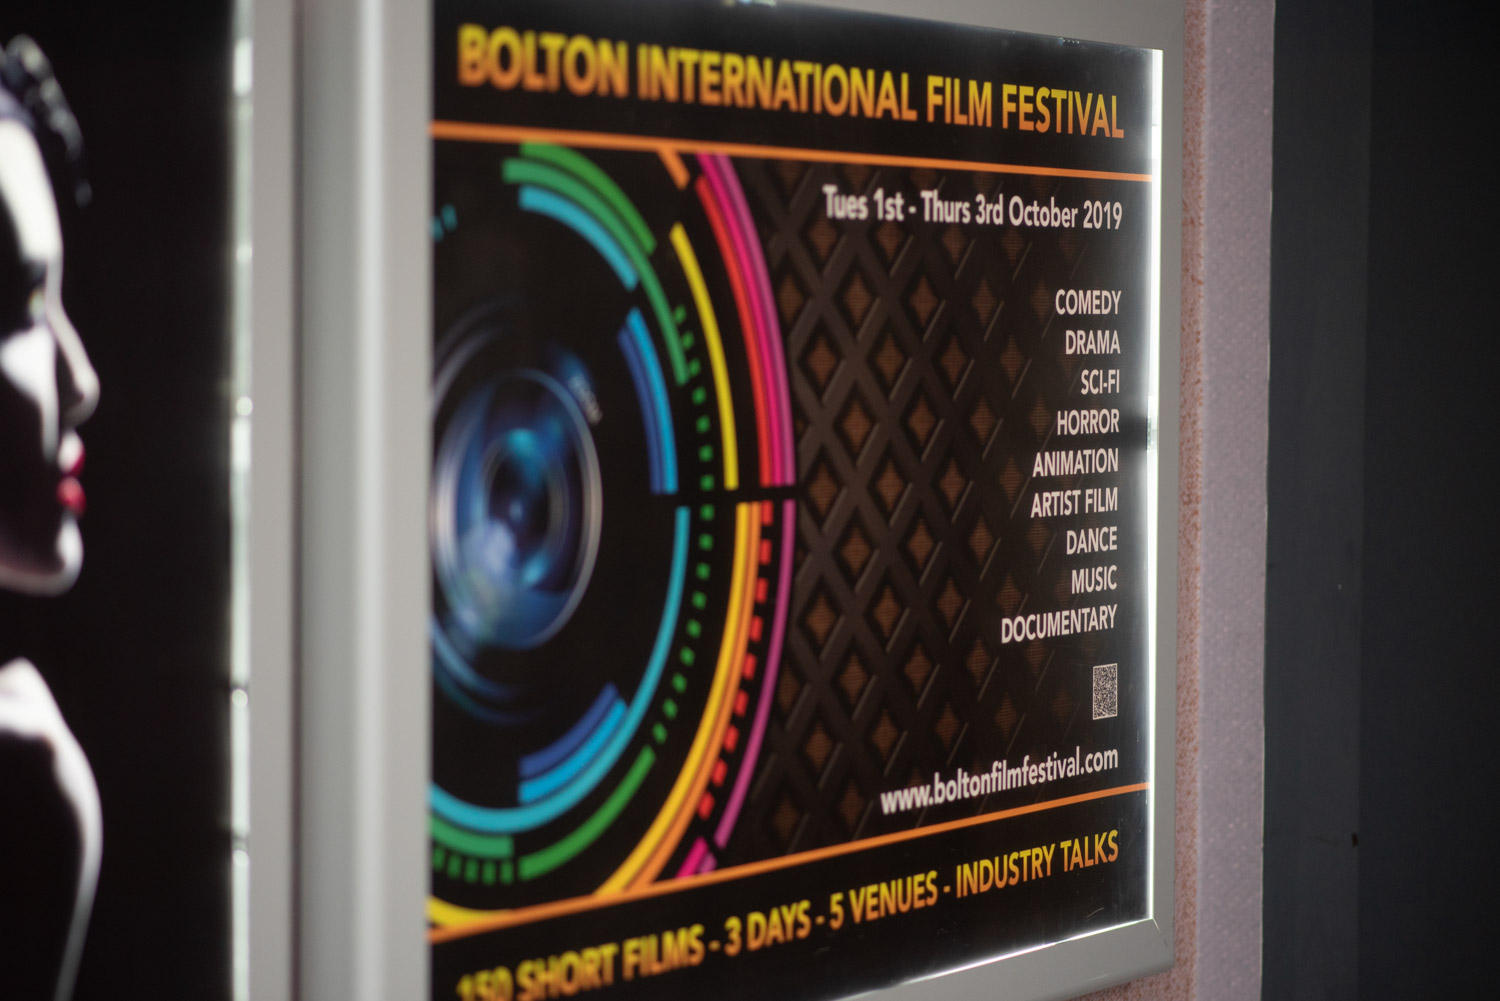 The festival posted on the Light Cinema wall